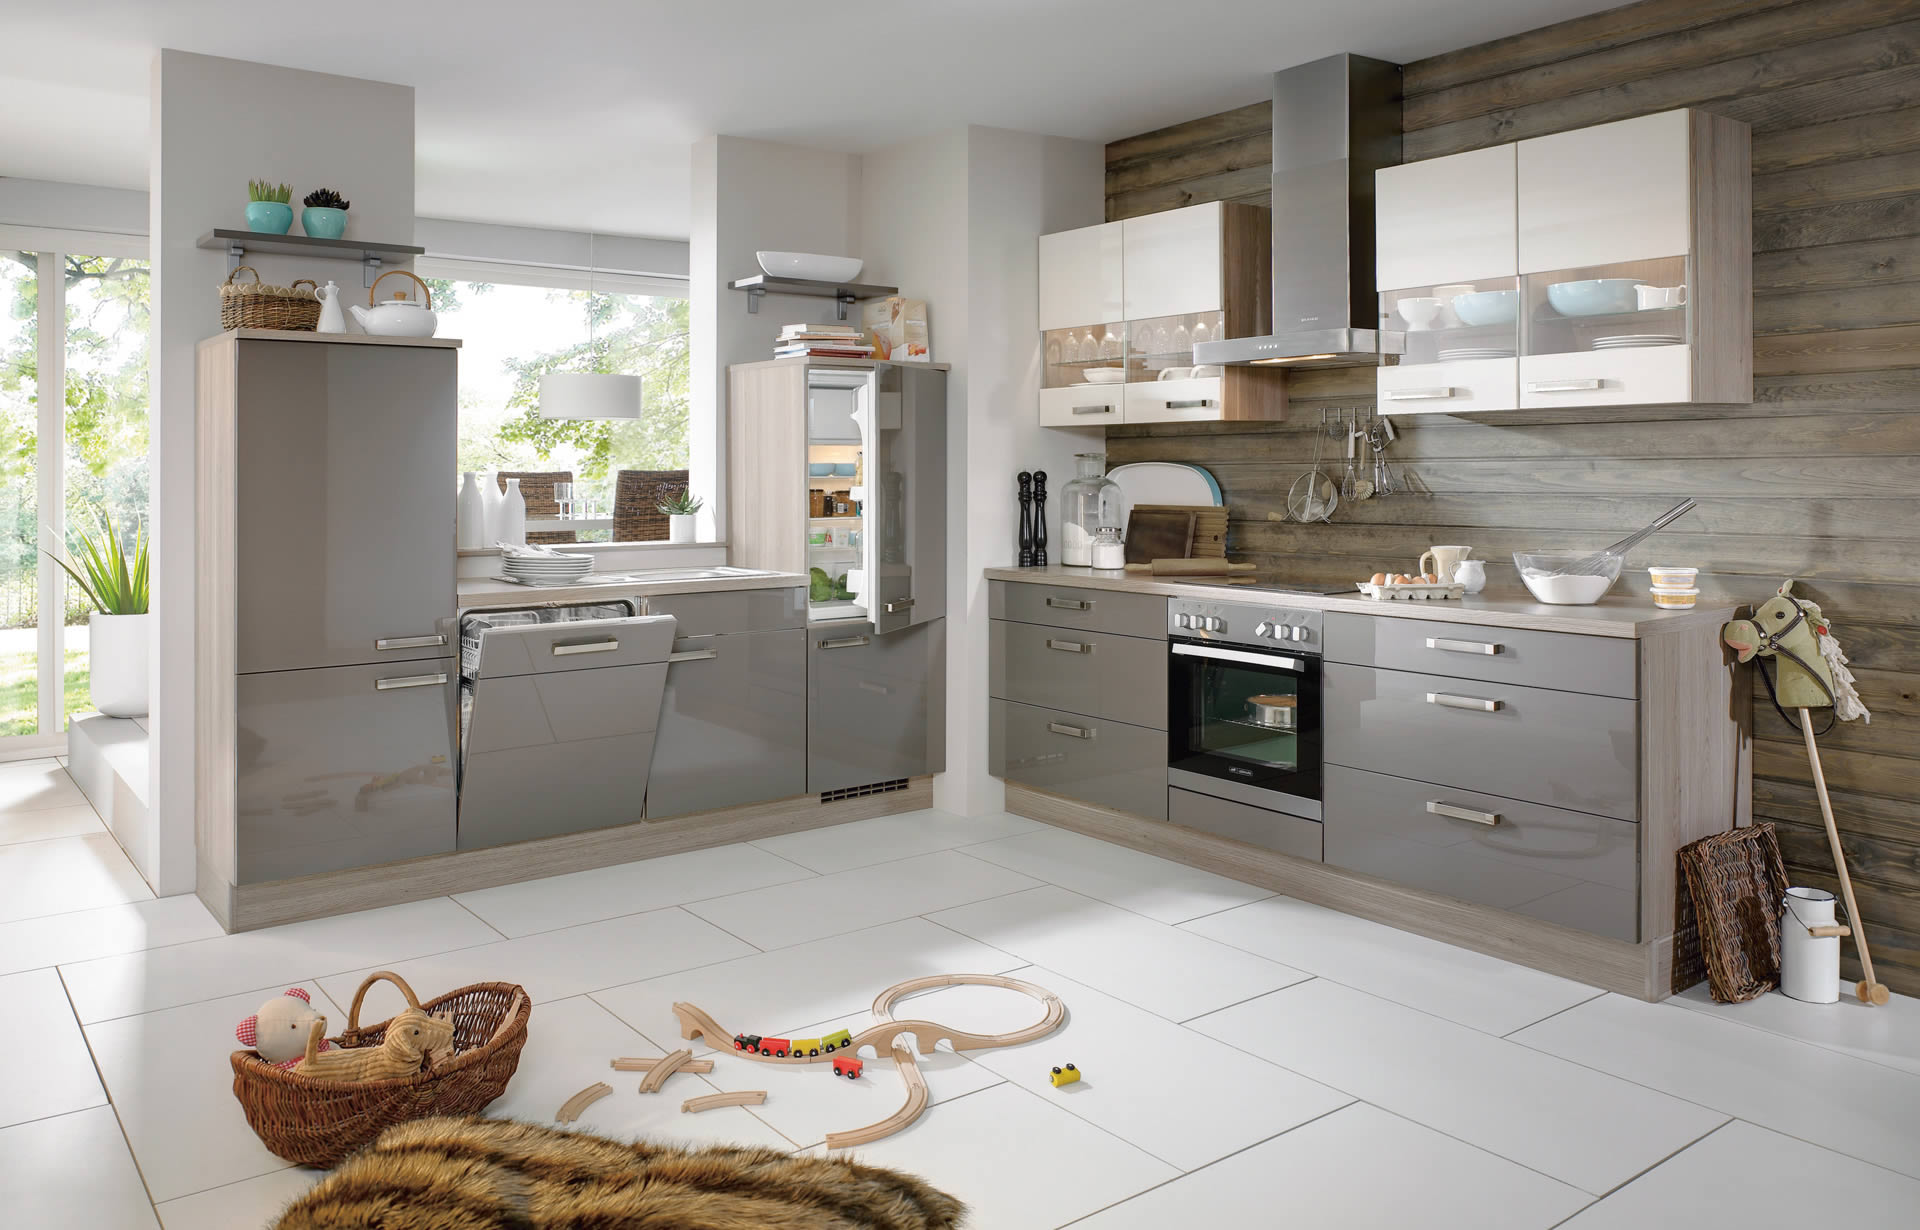 O reilly kitchens kitchens in carrickmacross co for Cuisine nobilia